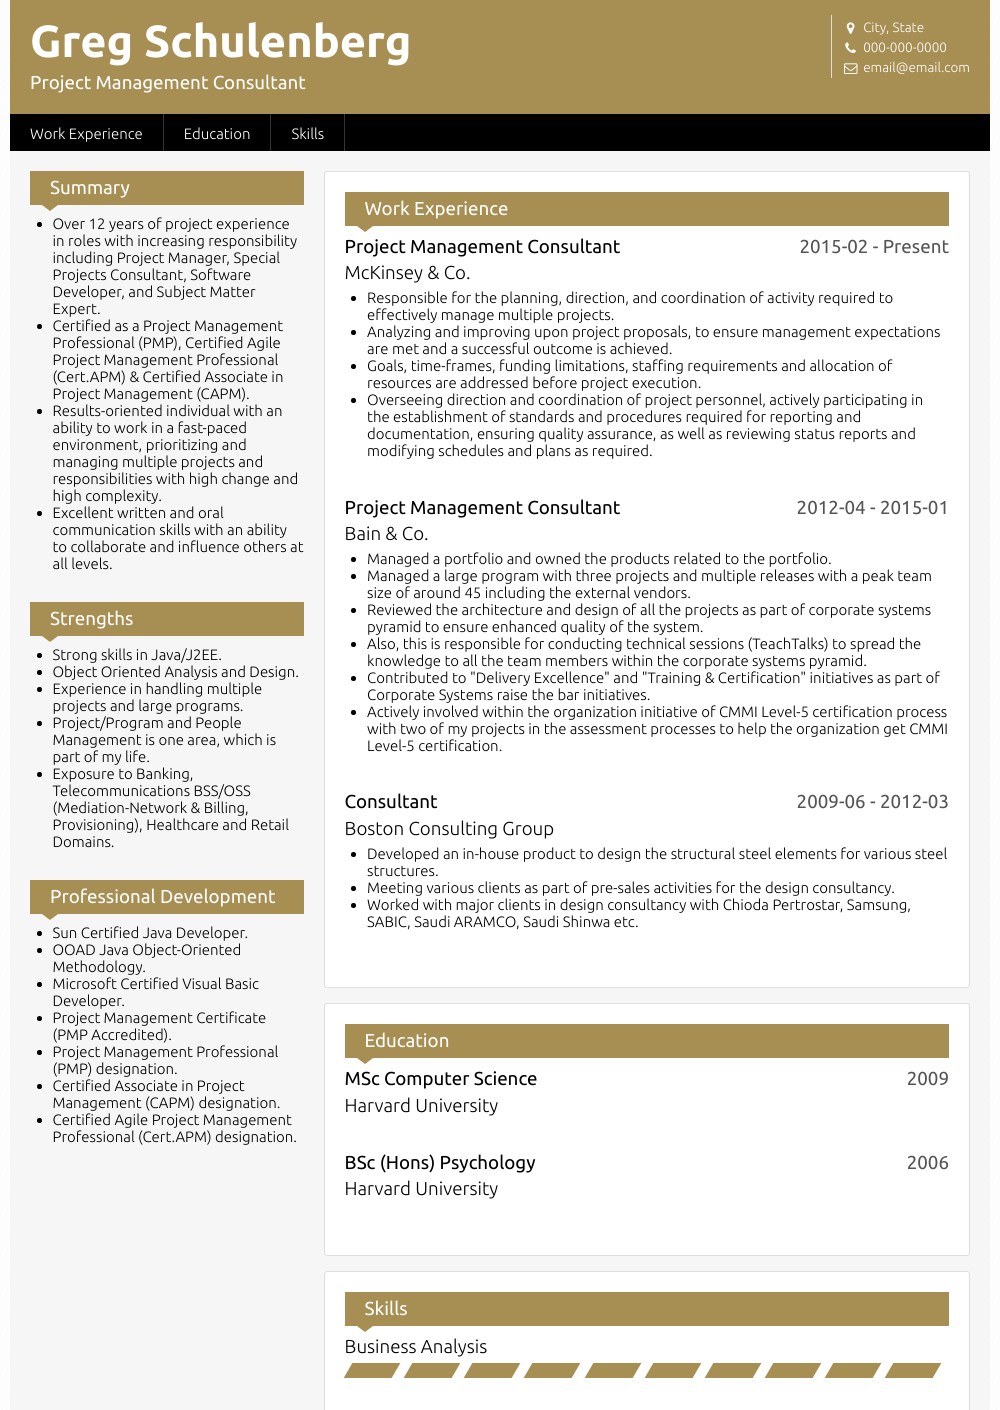 Management Consultant Resume Samples And Templates Visualcv